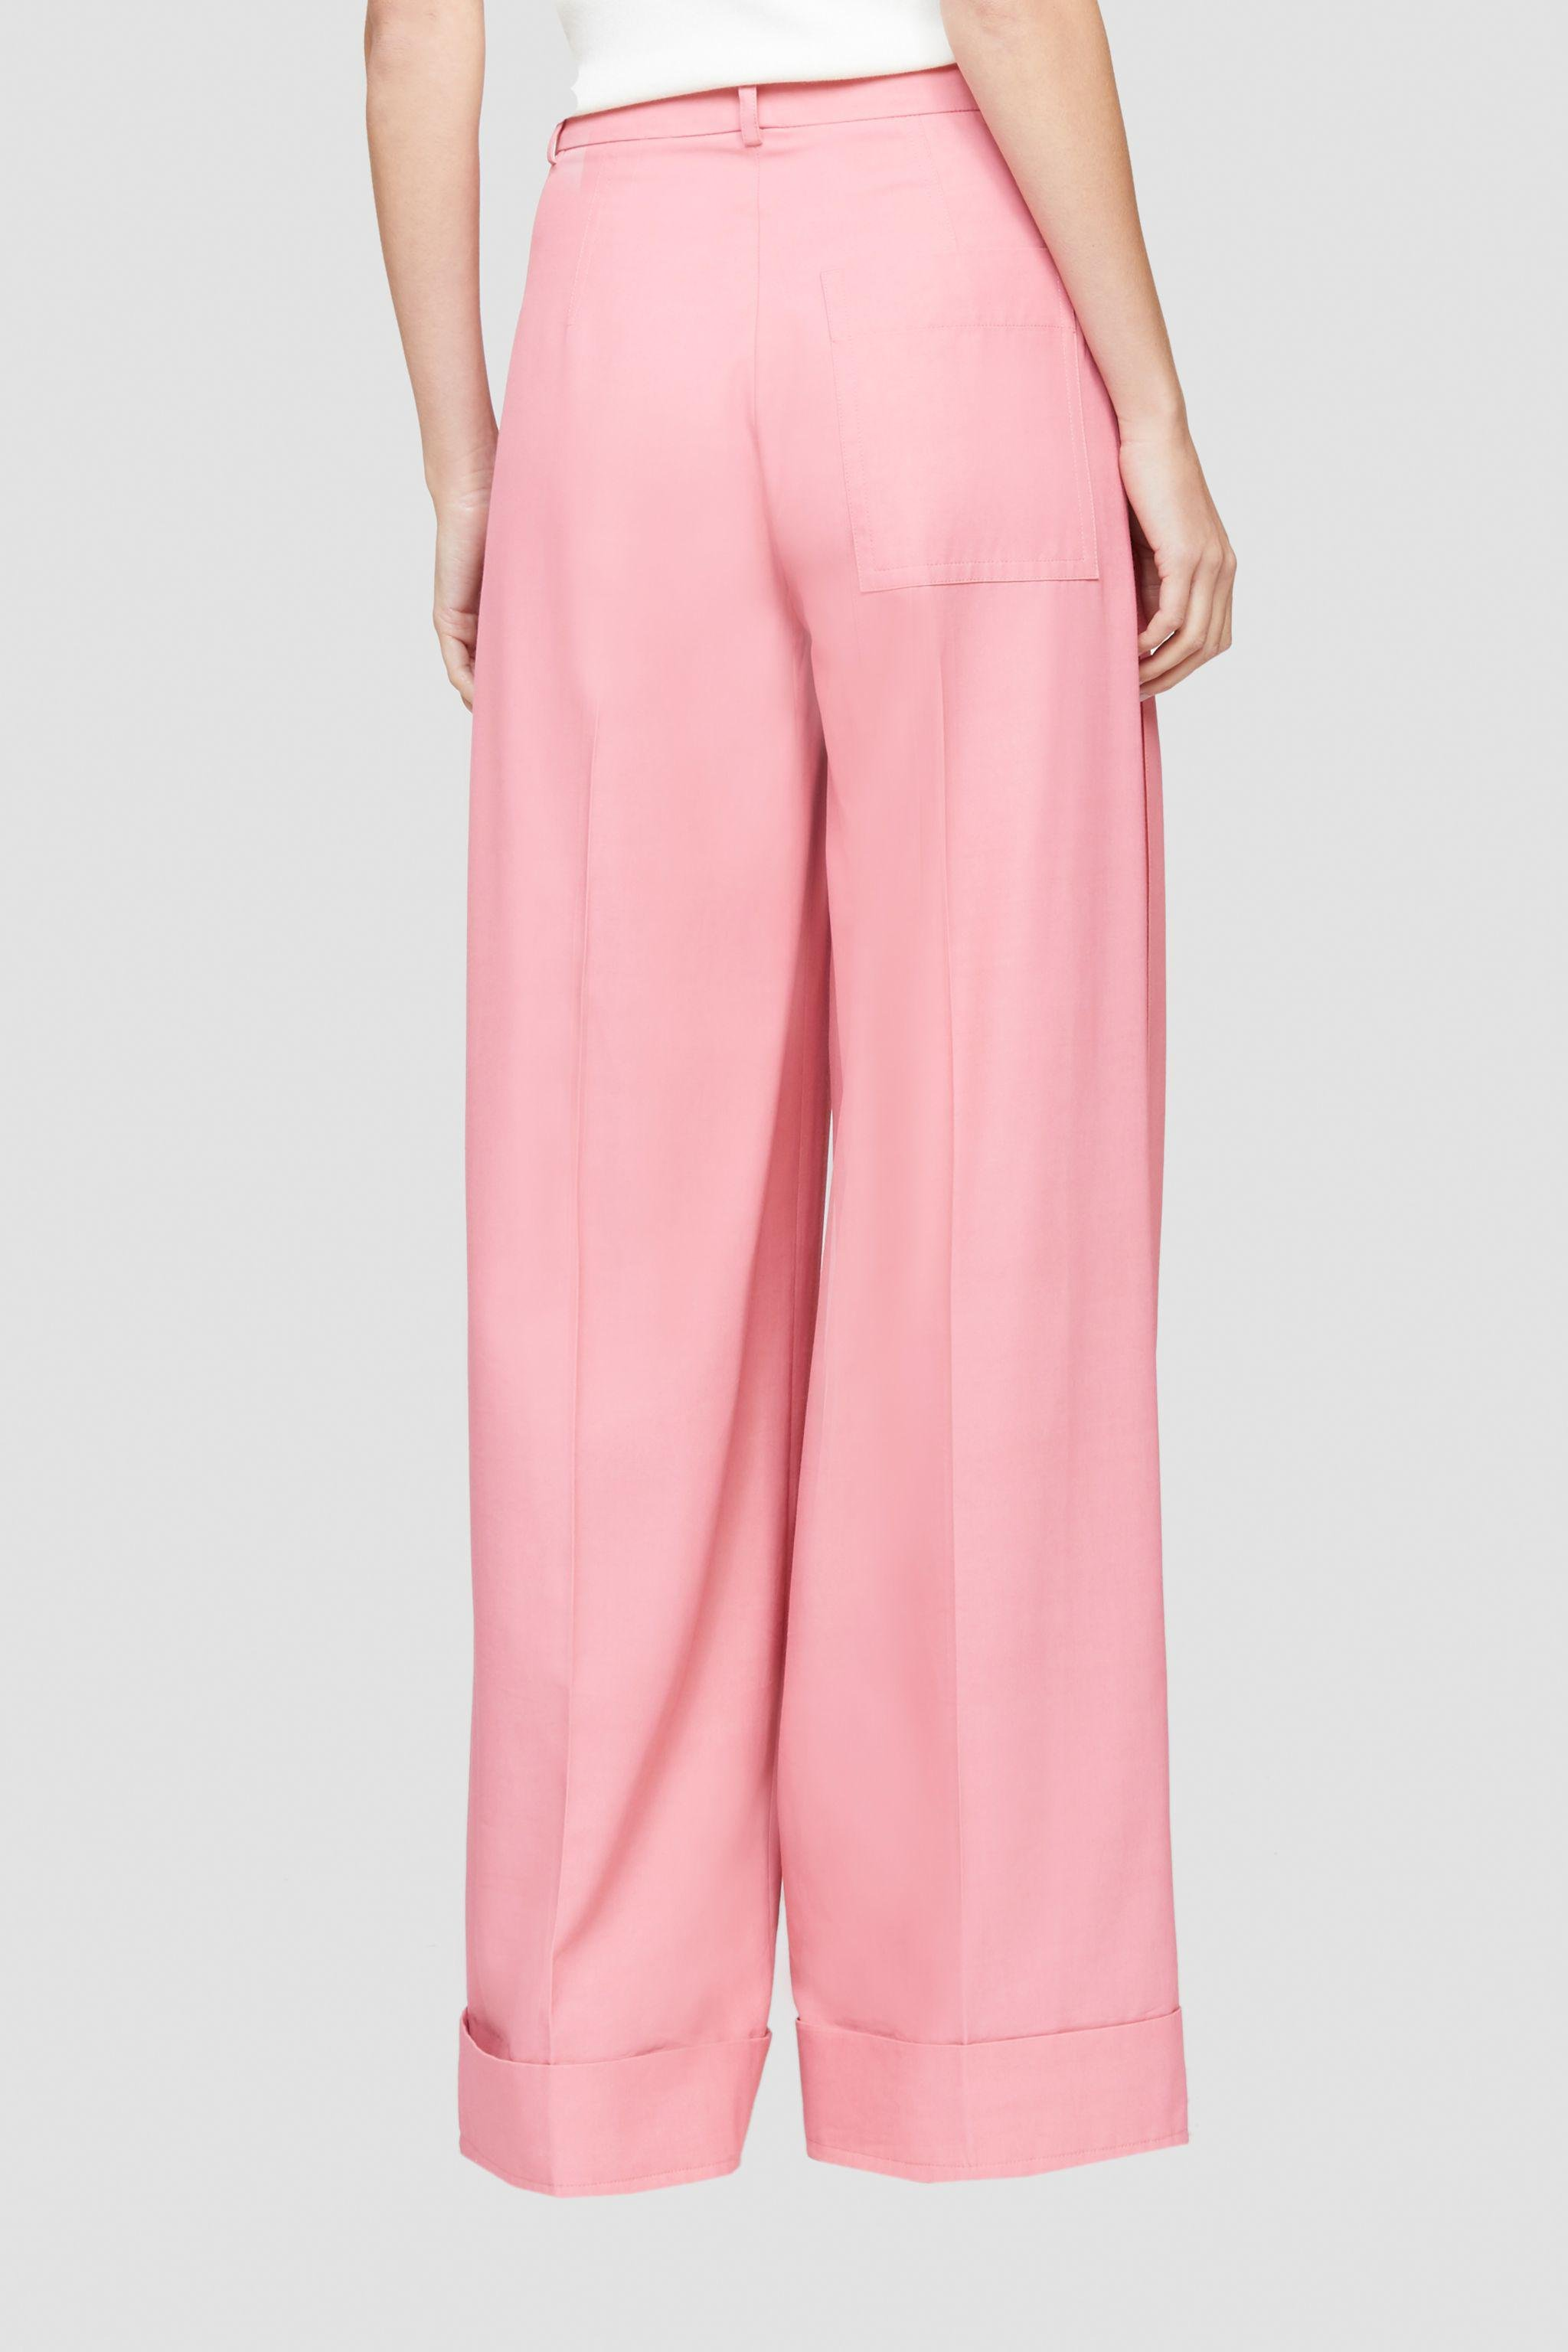 Flou pressed-crease palazzo trousers 3